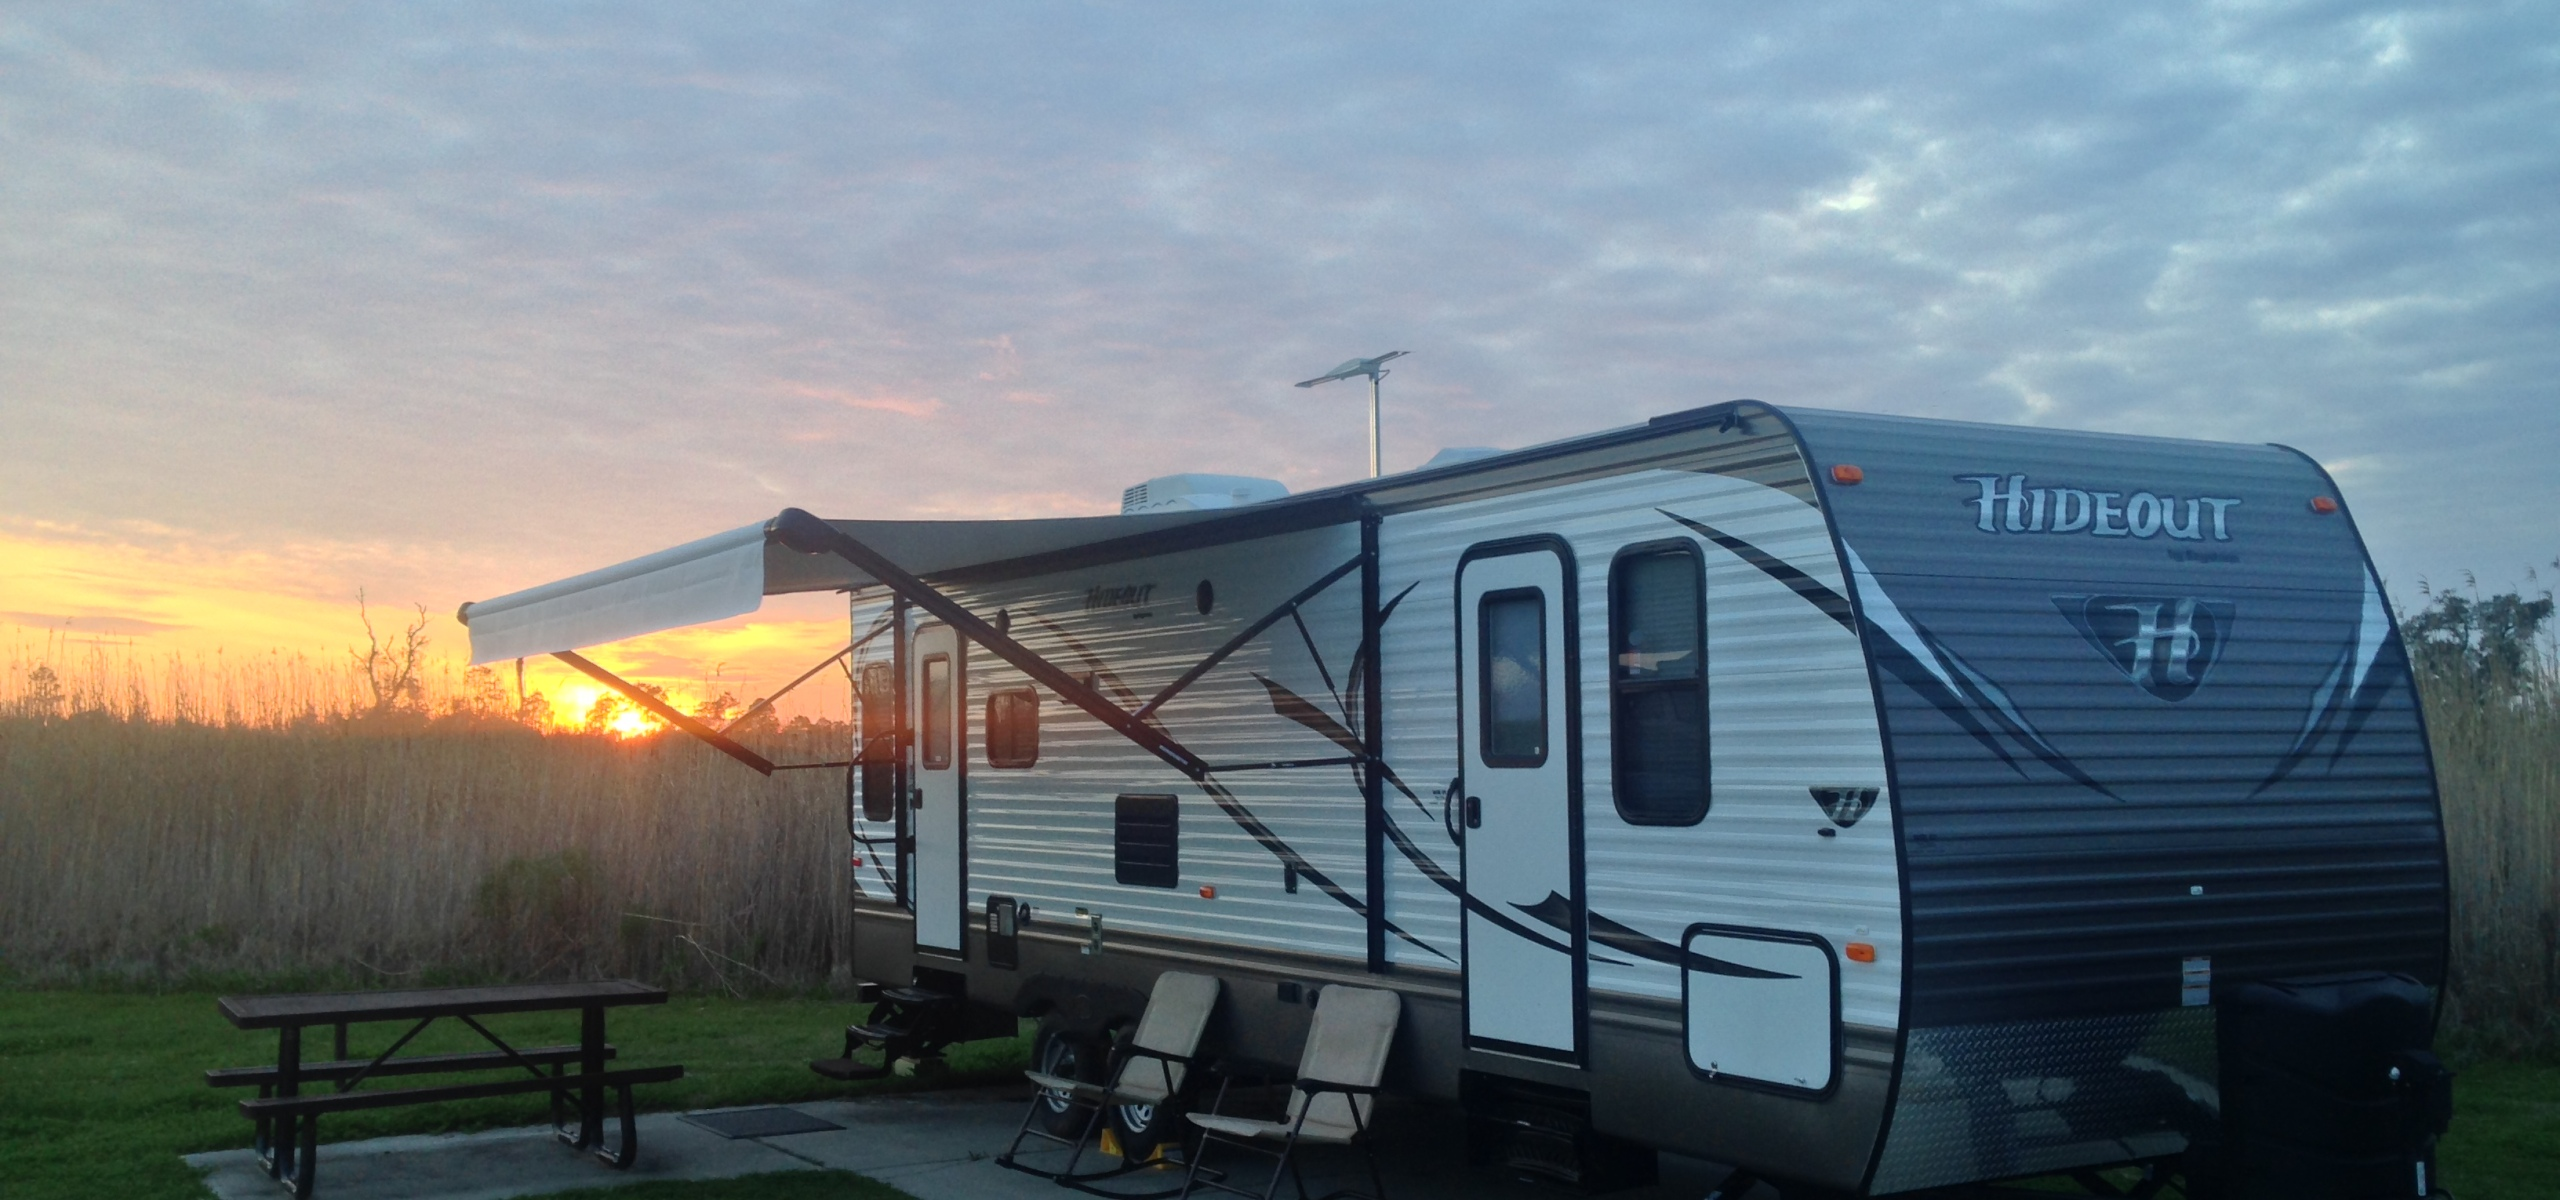 Travel Trailers are a perfect way to see new places